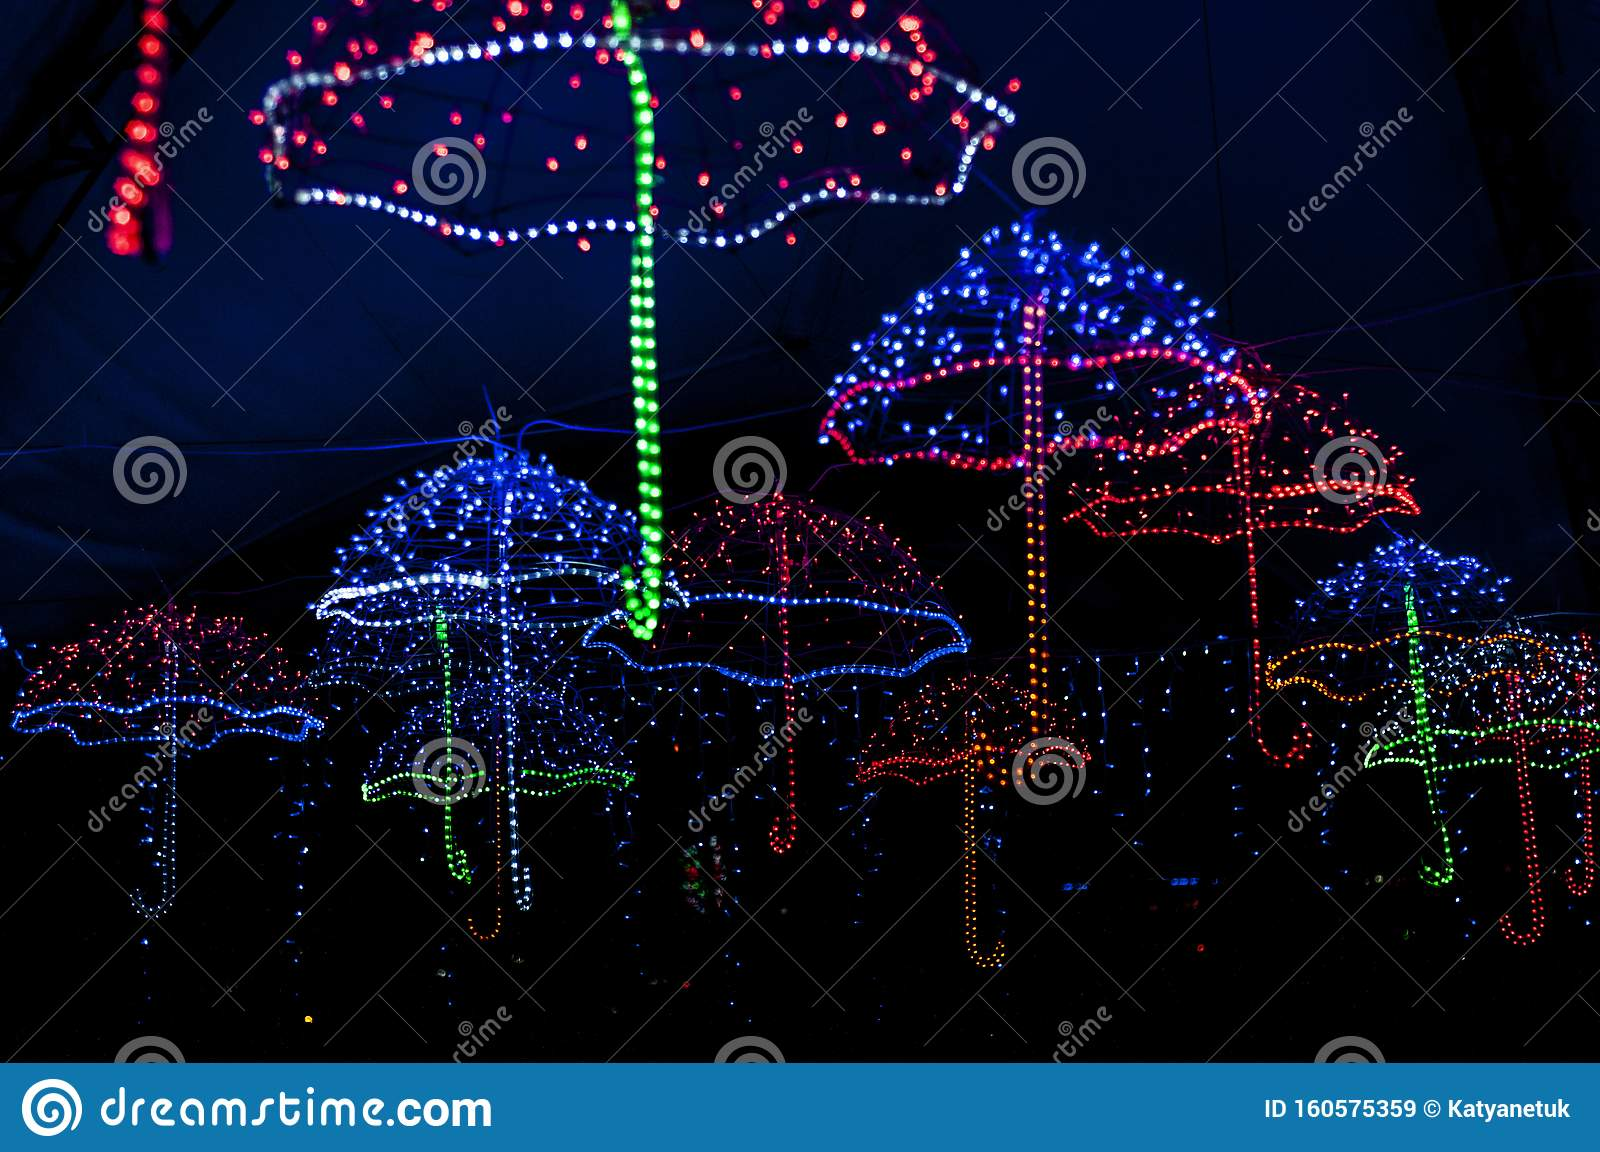 Christmas Light Decorations Glowing Umbrella Stock Image Image Of Effect Blurred 160575359